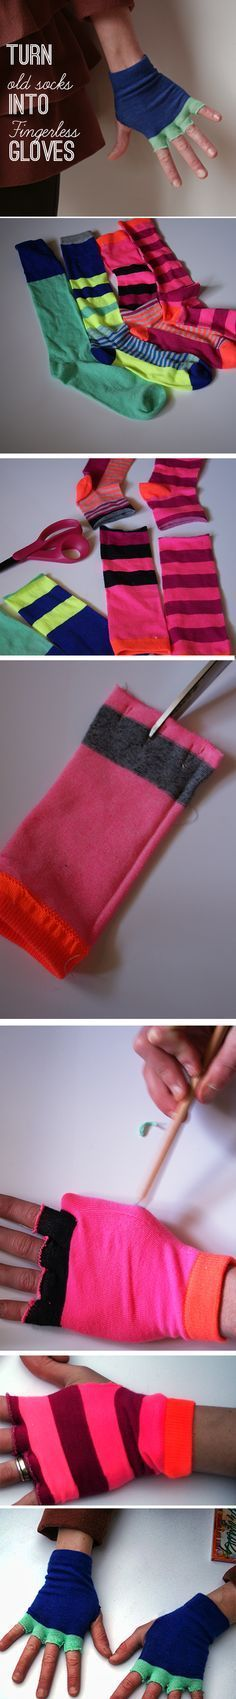 Upcycle old socks to fingerless gloves in this EASY diy Encore un autre tuto sur les chaussettes transfo en mitaines ; Sewing Hacks, Sewing Crafts, Sewing Projects, Diy Projects, Fun Crafts, Diy And Crafts, Sock Crafts, Creative Crafts, Alter Pullover